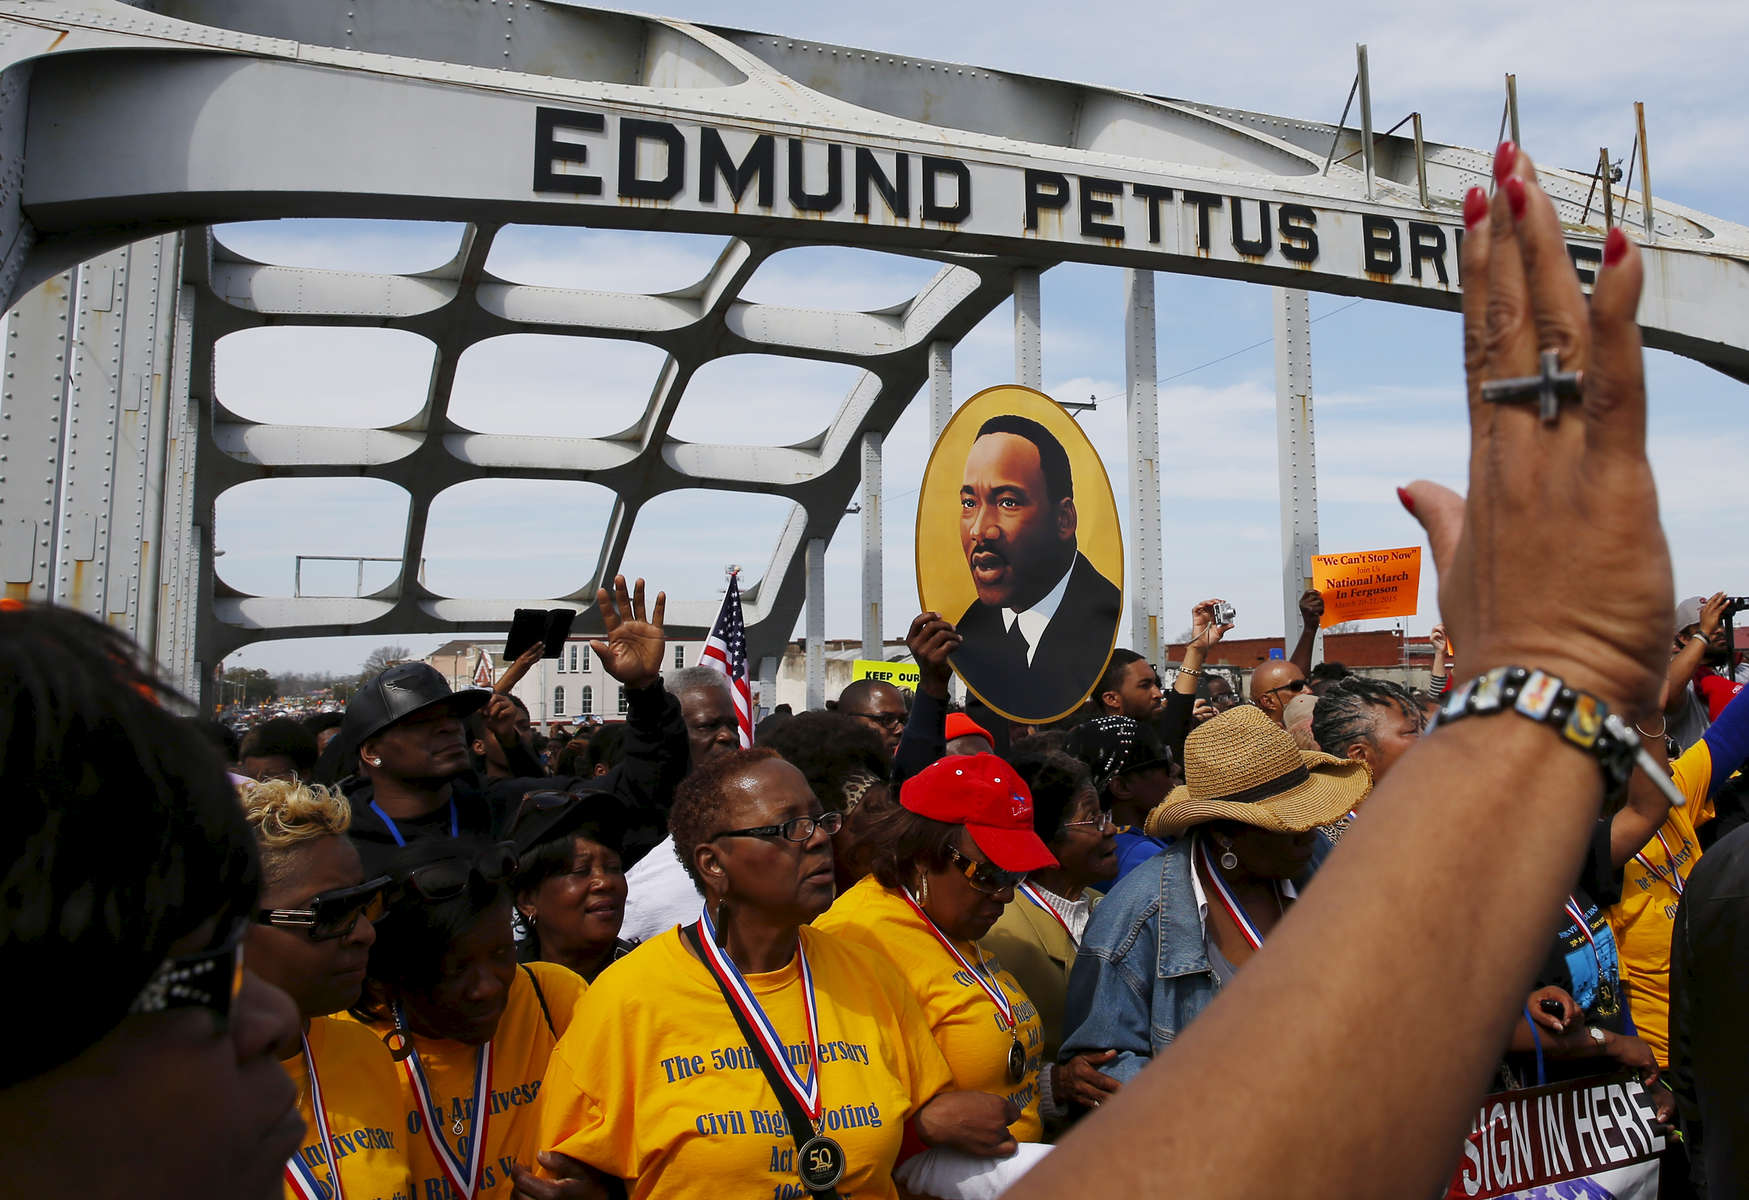 Selma, Alabama -- 3/08/2015-- Marchers retrace the steps of those who marched with Dr. Martin Luther King, Jr. over the Edmund Pettus Bridge in Selma, Alabama March 8, 2015. Jessica Rinaldi/Globe StaffTopic: 09selmaReporter: